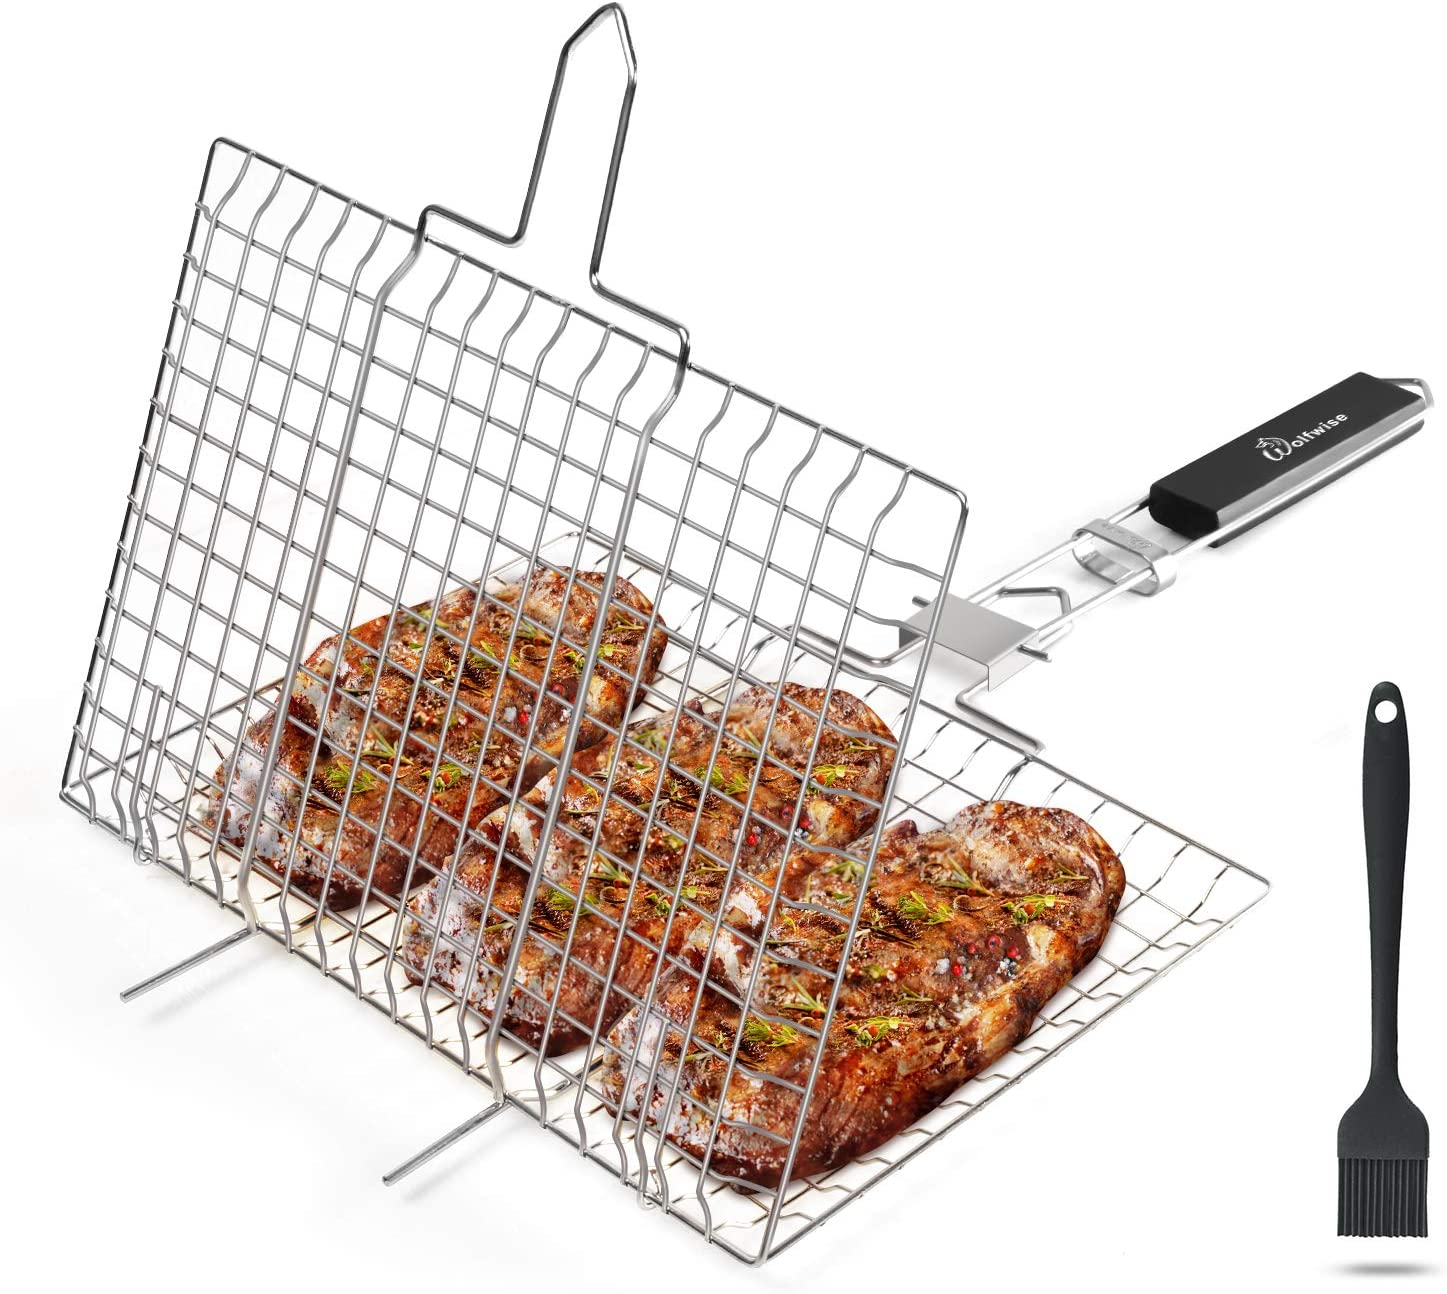 Barbecue Burger Vegetable WolfWise Portable BBQ Fish Grilling Basket Grates